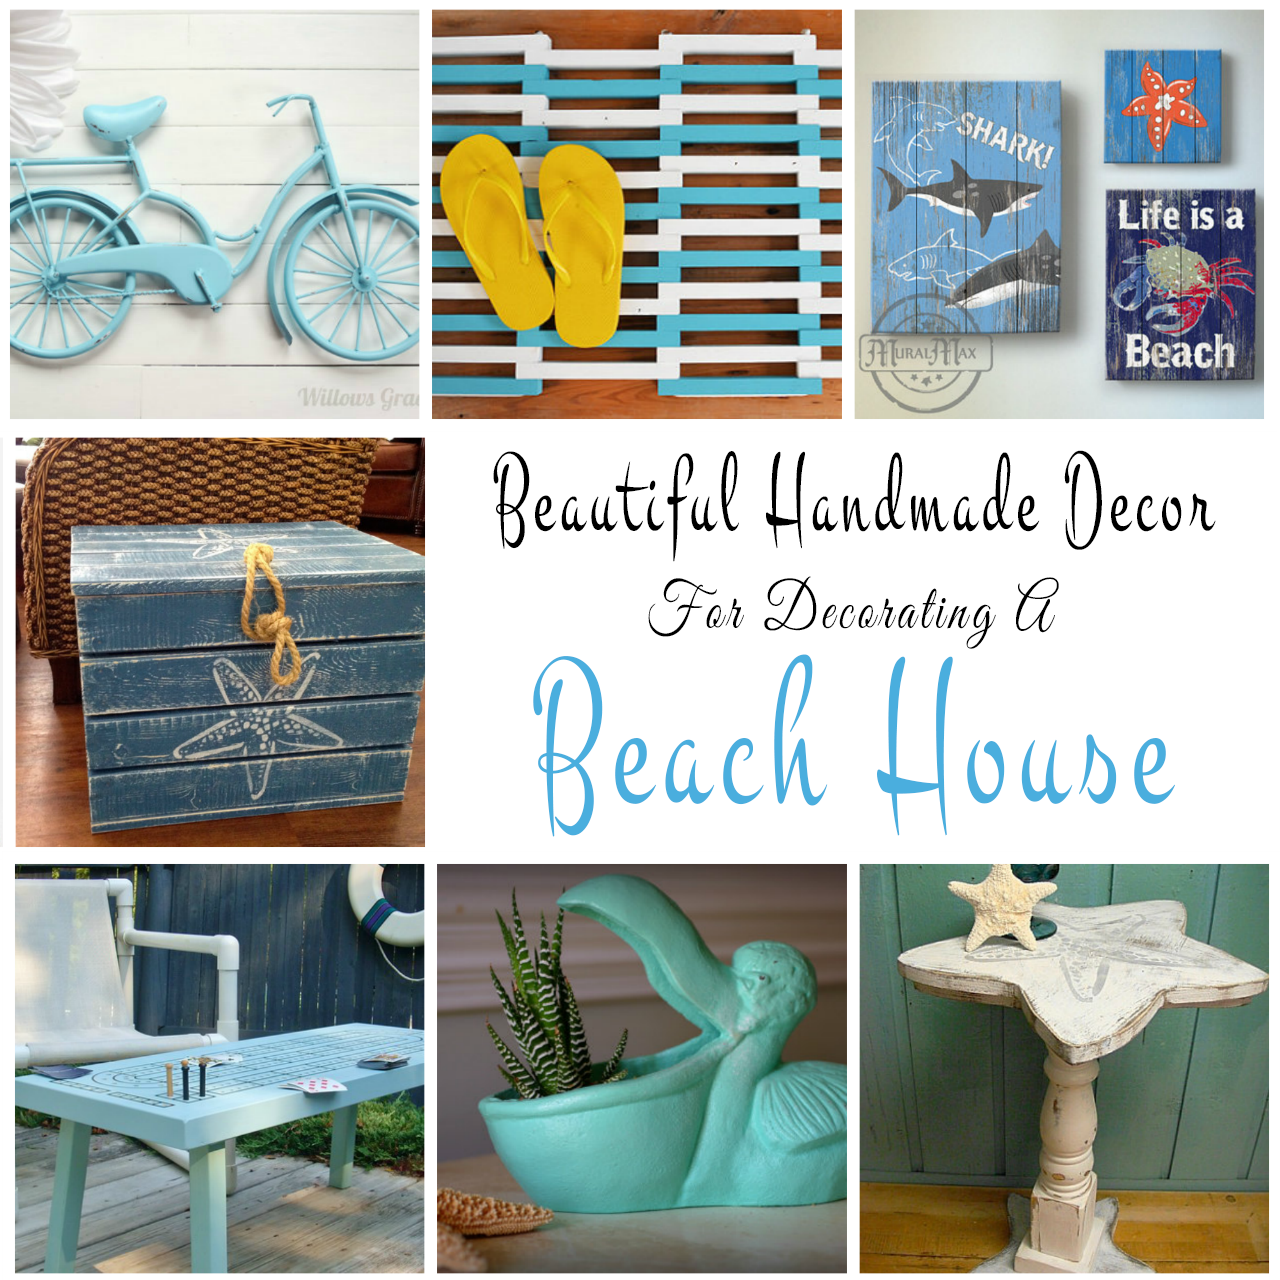 Handmade decor ideas for decorating a beach house for Ideas to decorate your house